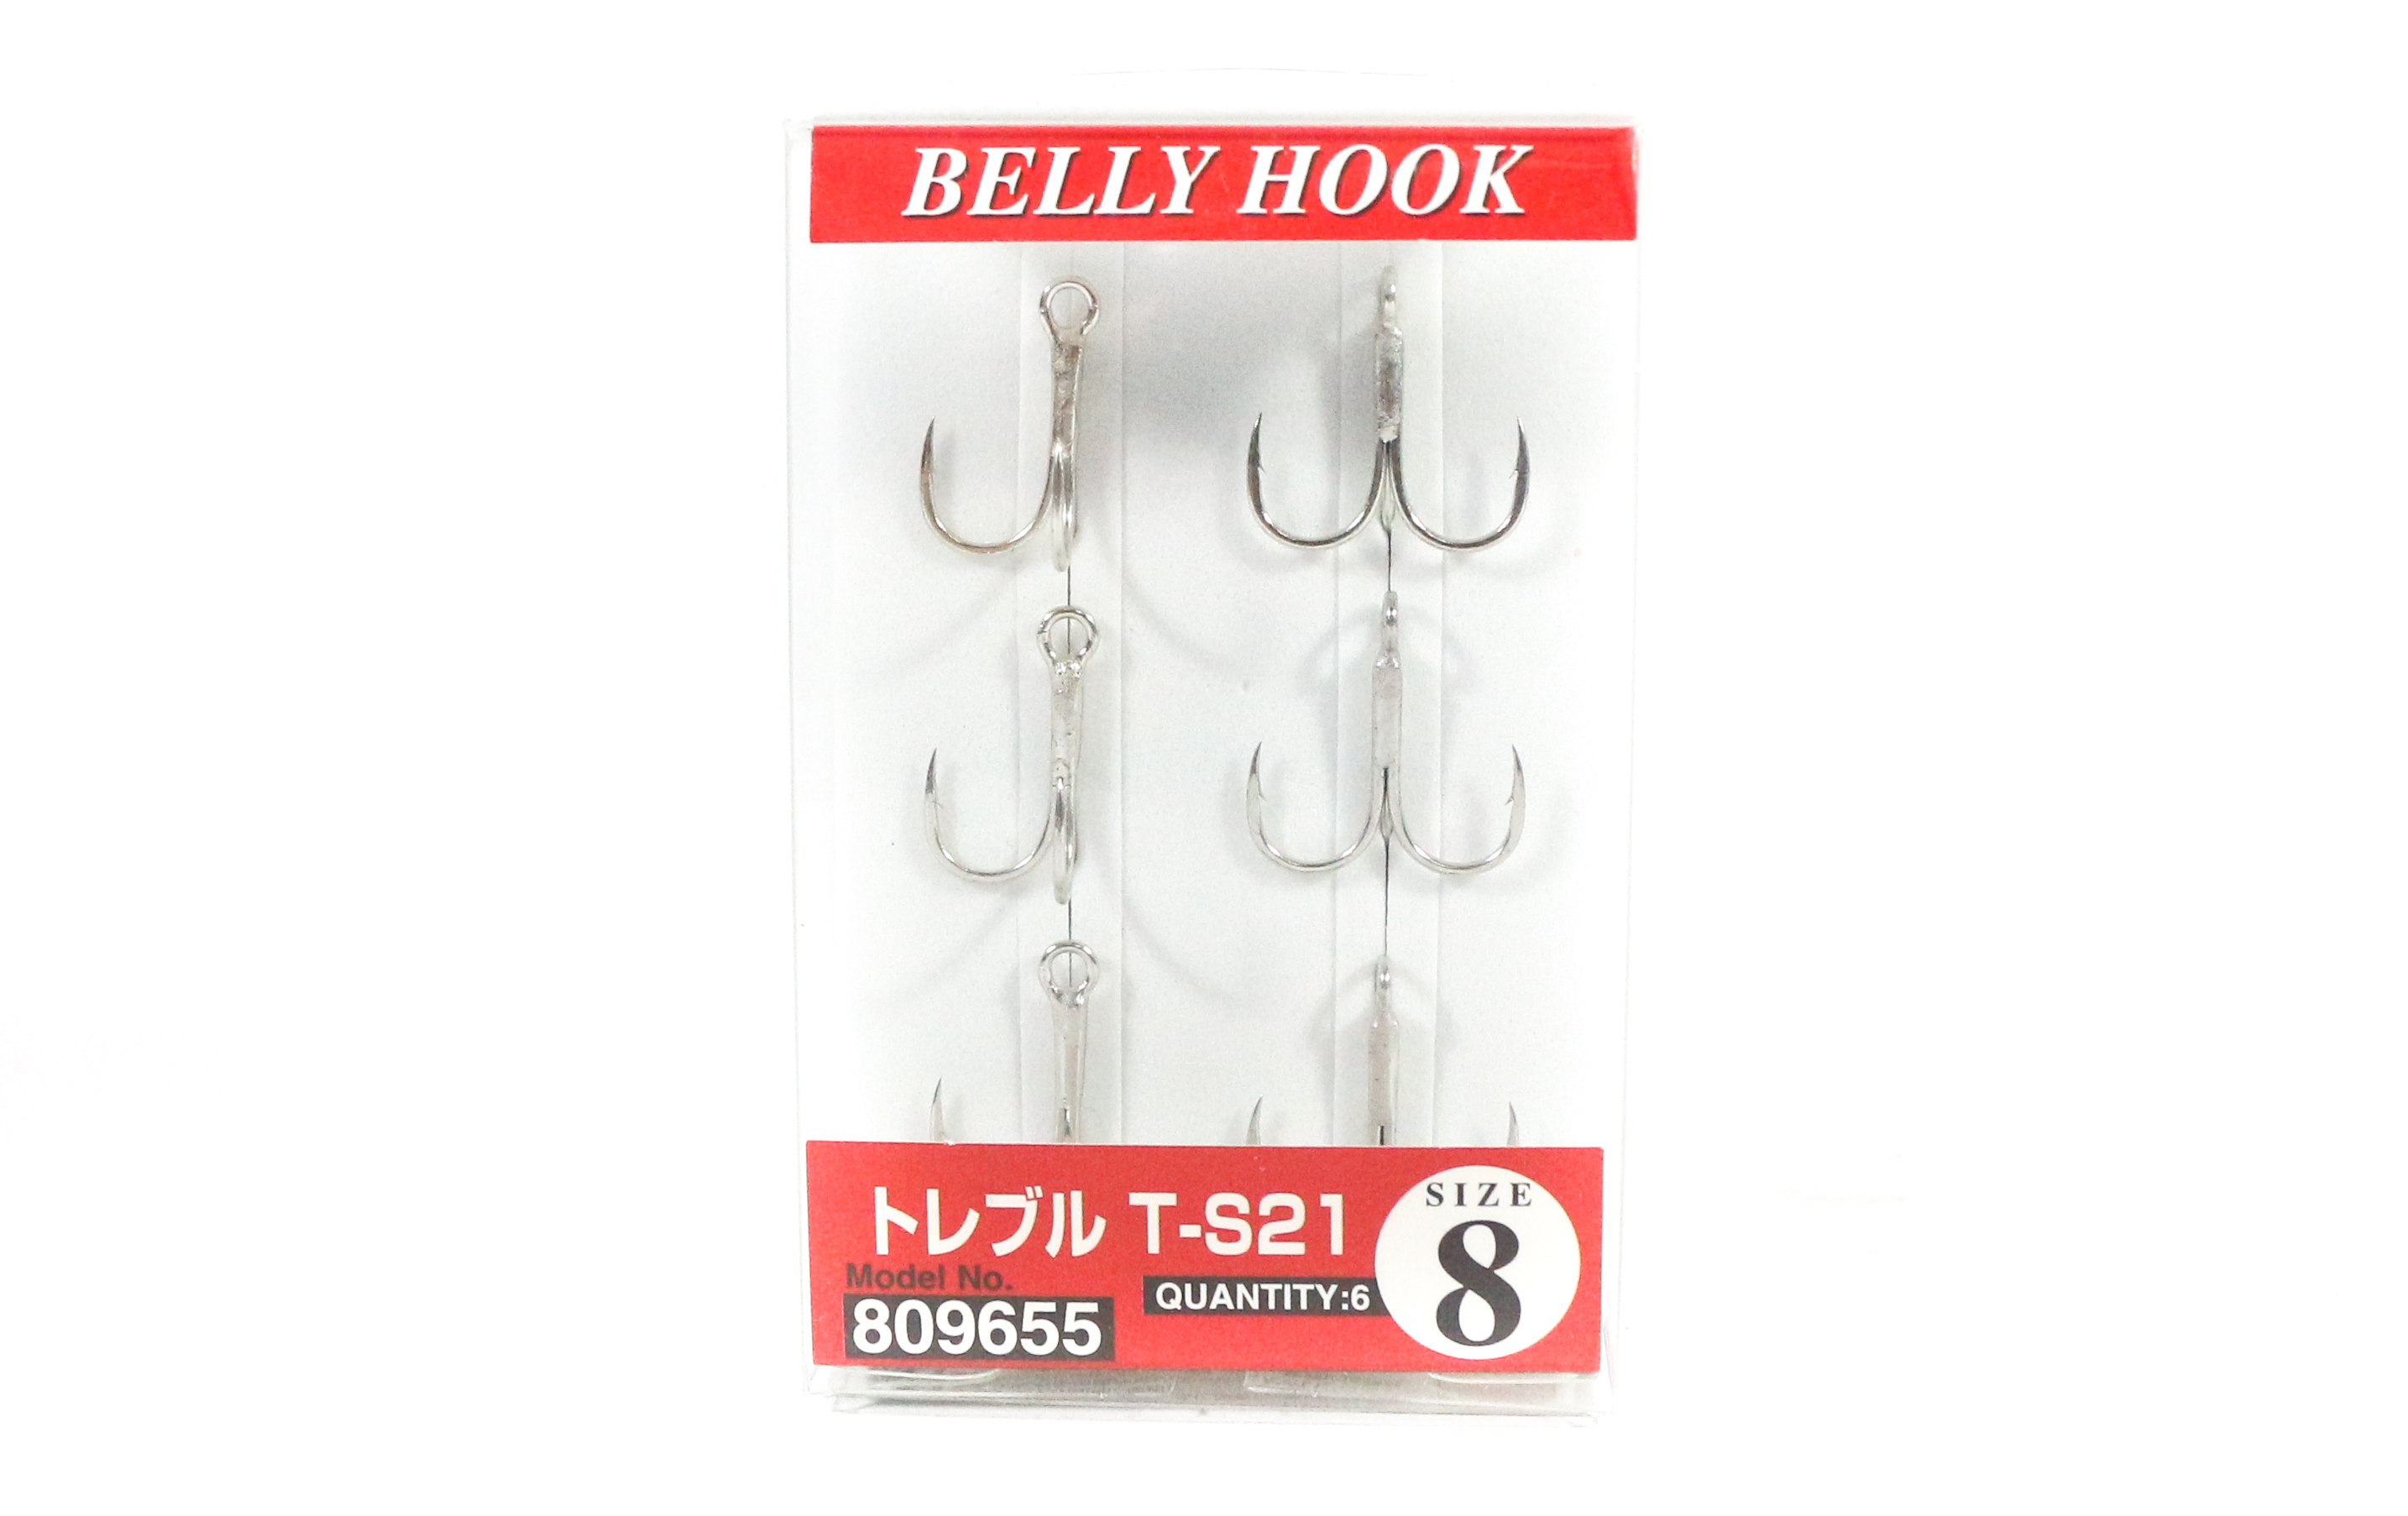 Decoy T-S21 Treble Hook T Shaped 3 Point Treble Hooks Size 8 (9655)